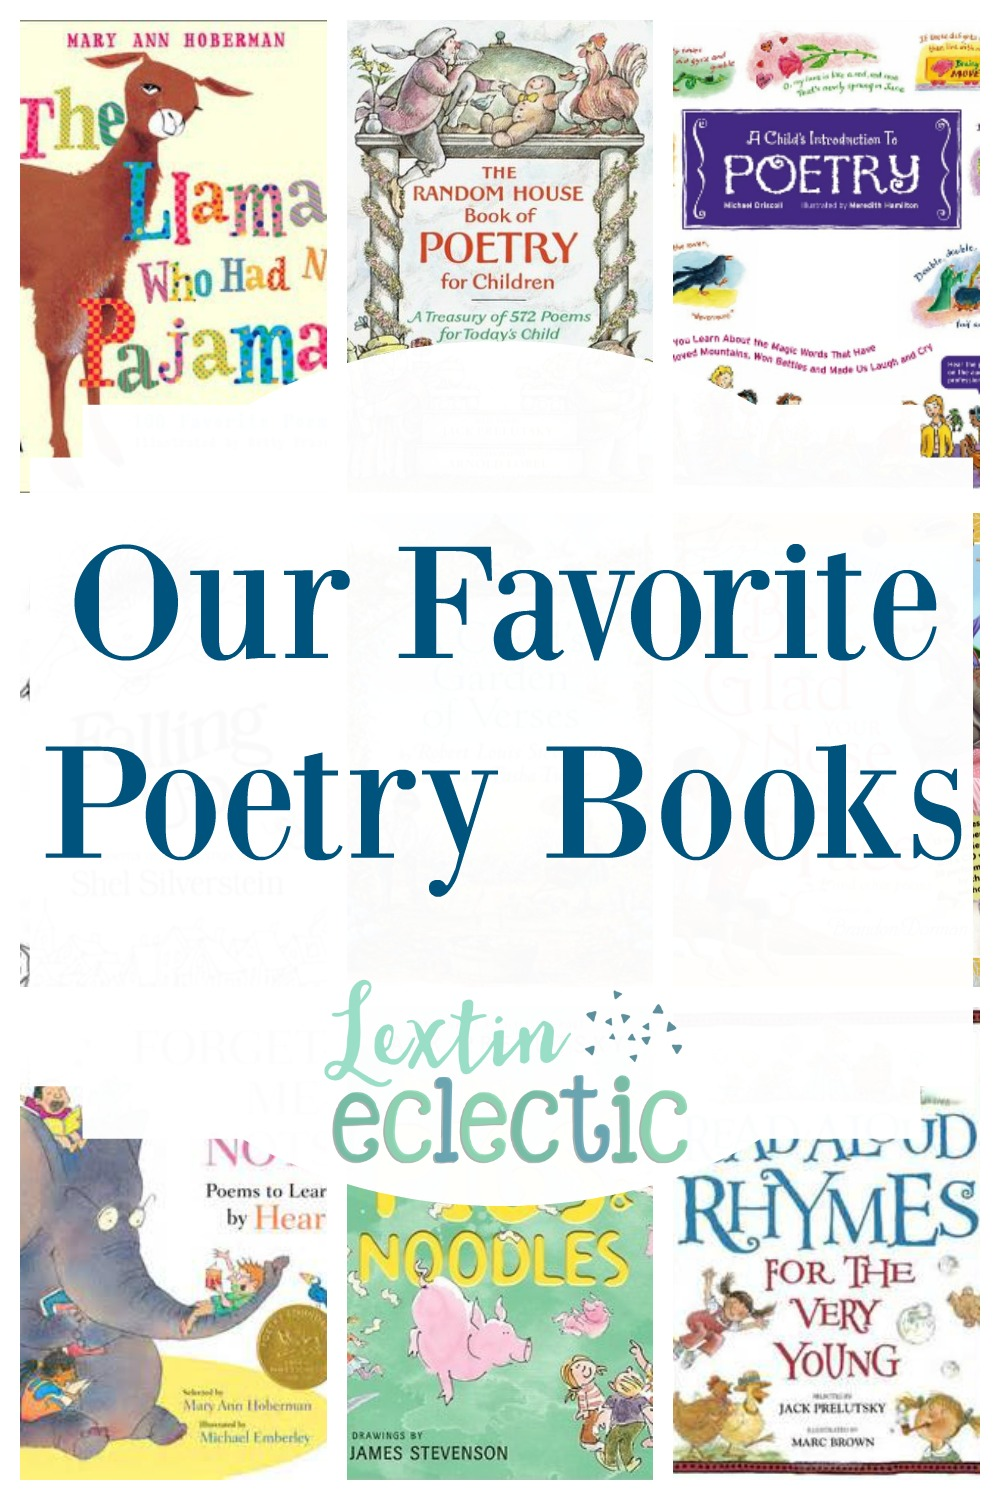 Our Favourite Tree Guide Trees Of The Carolinian Forest: Our Favorite Poetry Books